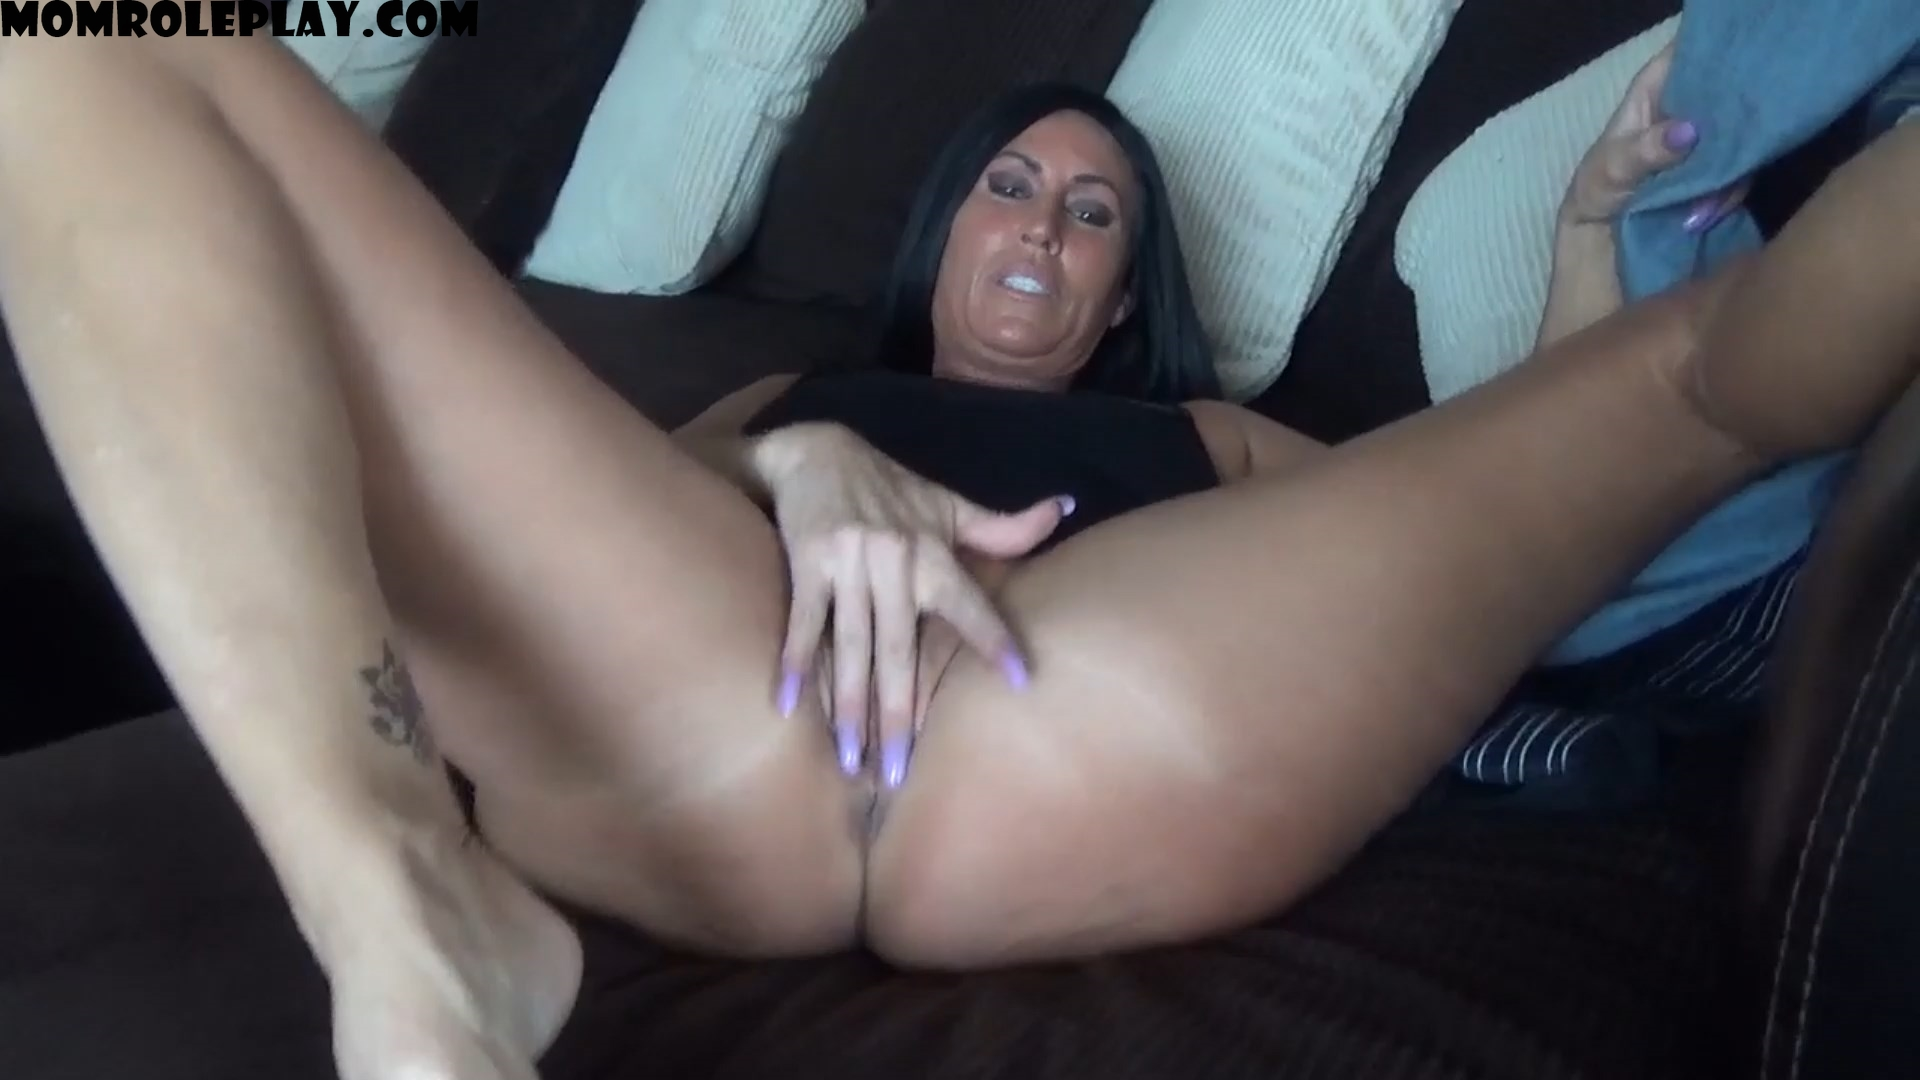 Katie71 - MILF Takes Son's Friend's Virginity 1080p